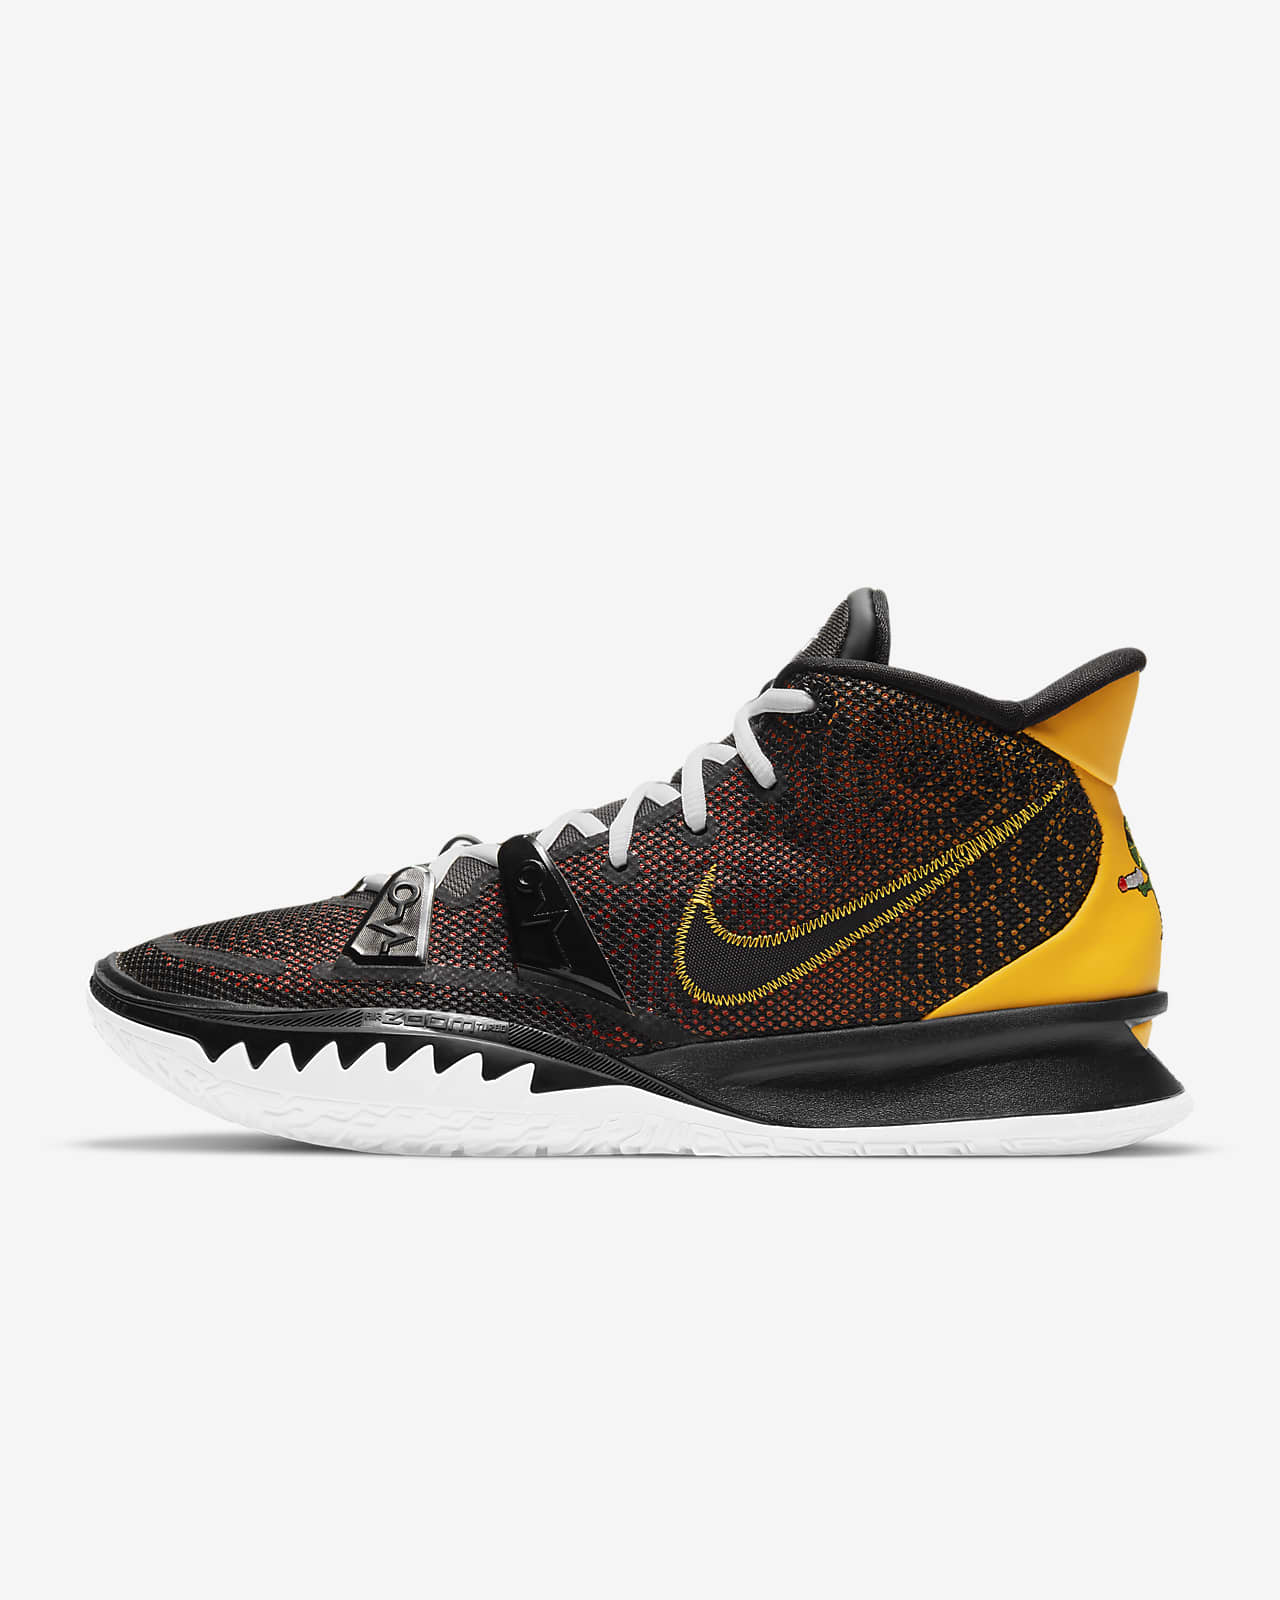 """Kyrie 7 """"Rayguns"""" Basketball Shoes"""